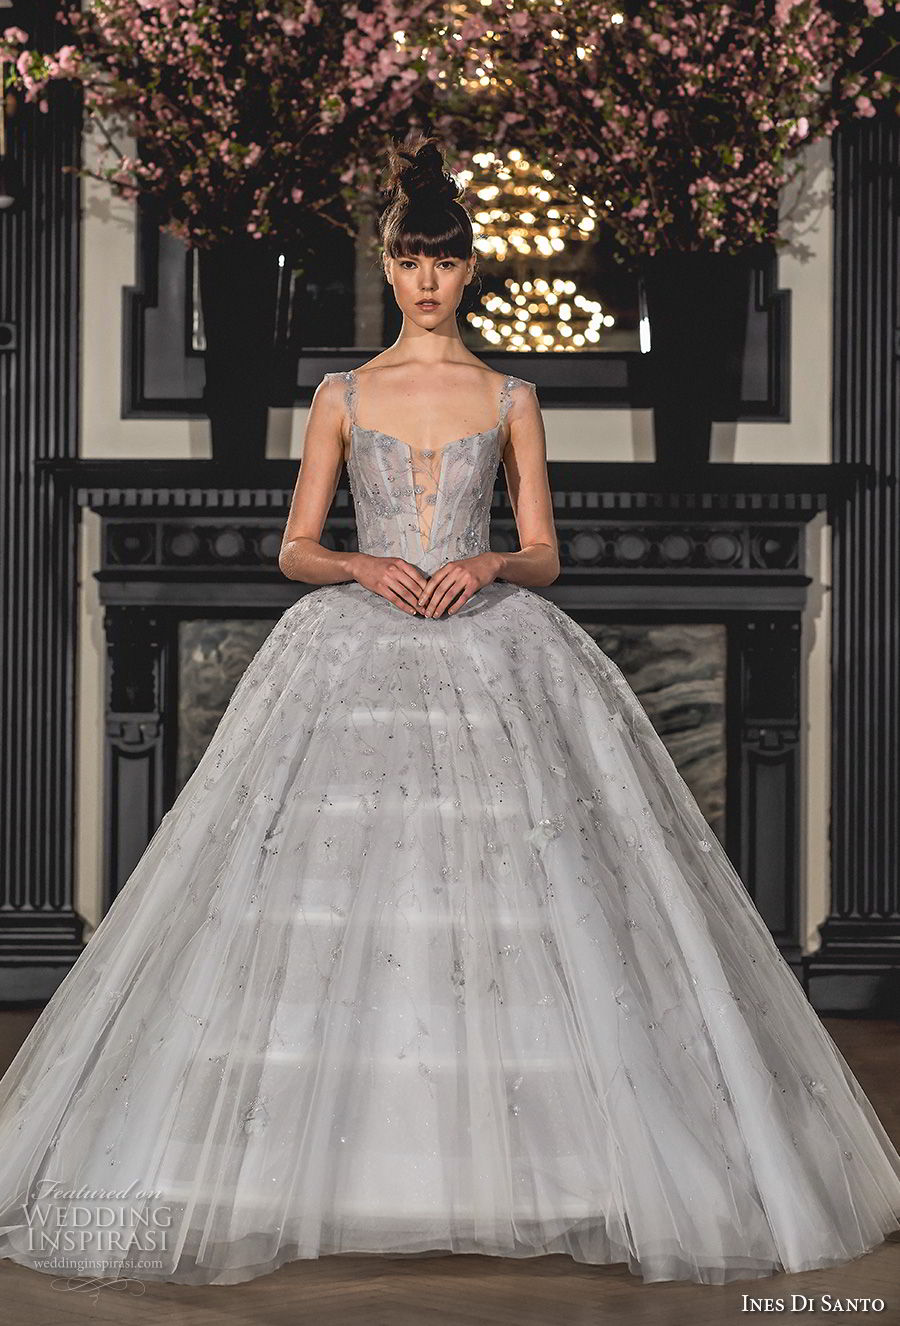 ines di santo spring 2019 bridal thin strap square neckline heavily embellishment romantic princess gray ball gown a line wedding dress (8) mv